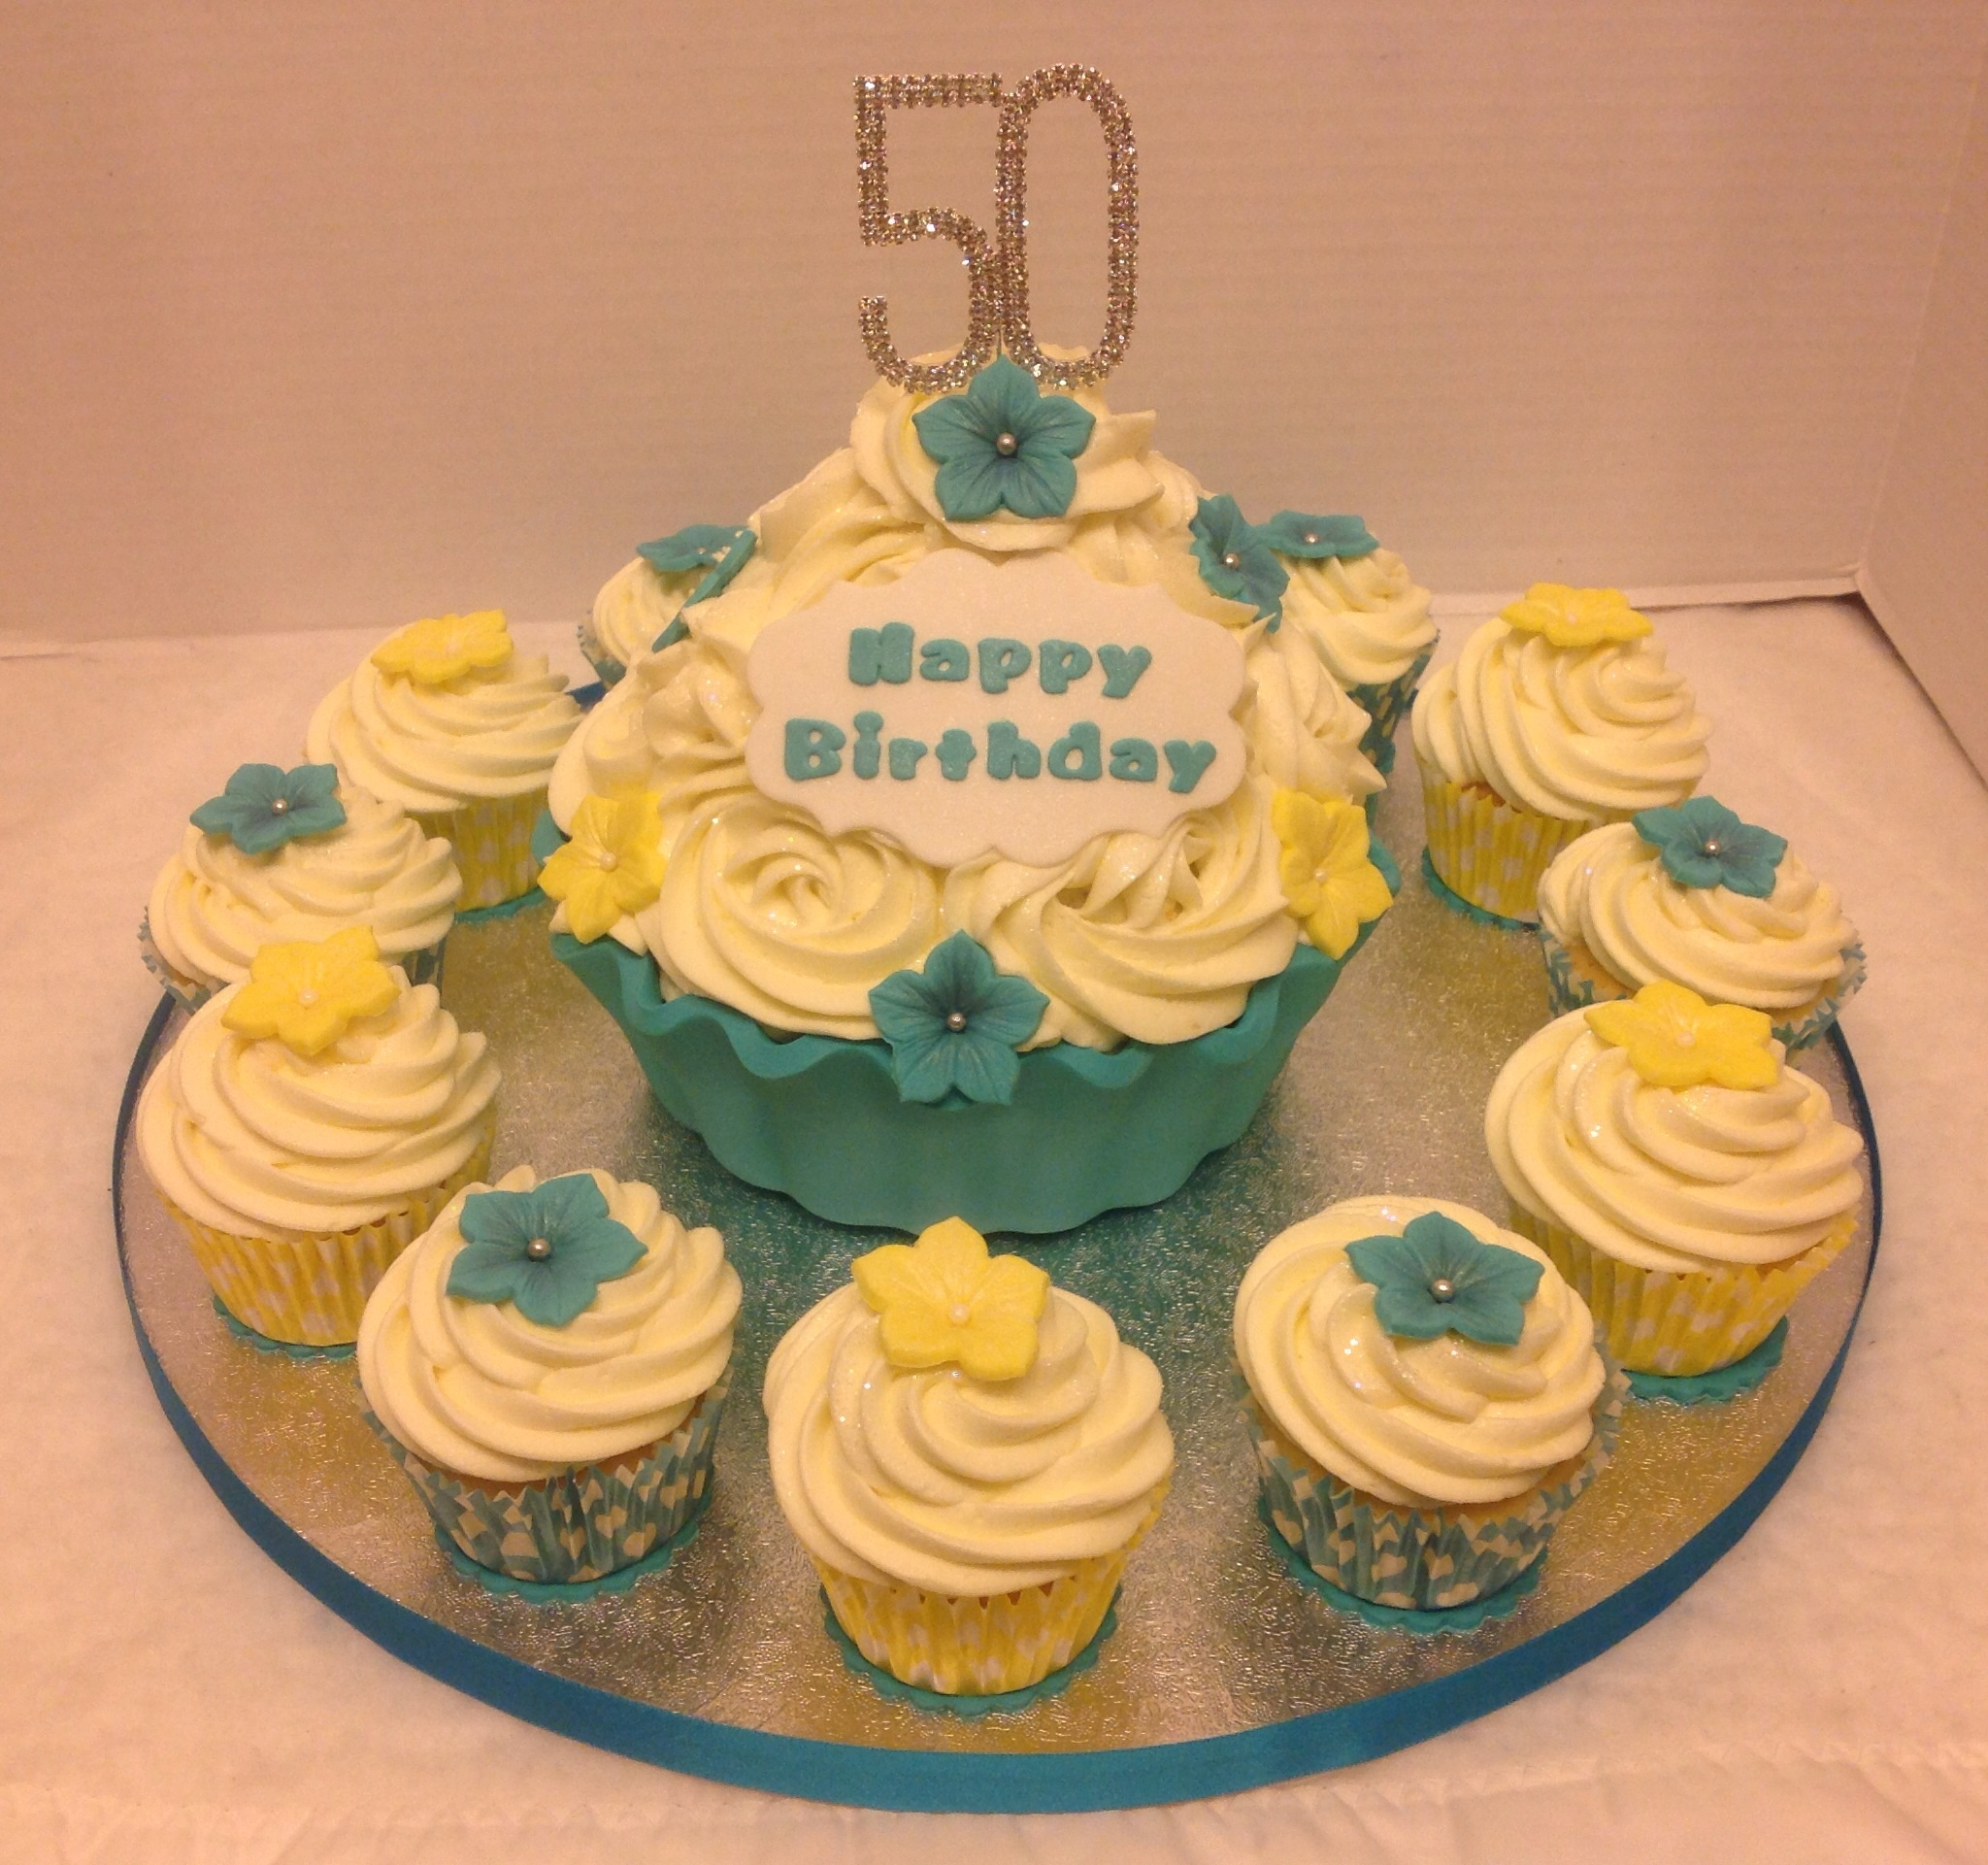 Cupcake Decorating Ideas For 50th Birthday : Giant Cupcake for 50th Birthday Flickr - Photo Sharing!